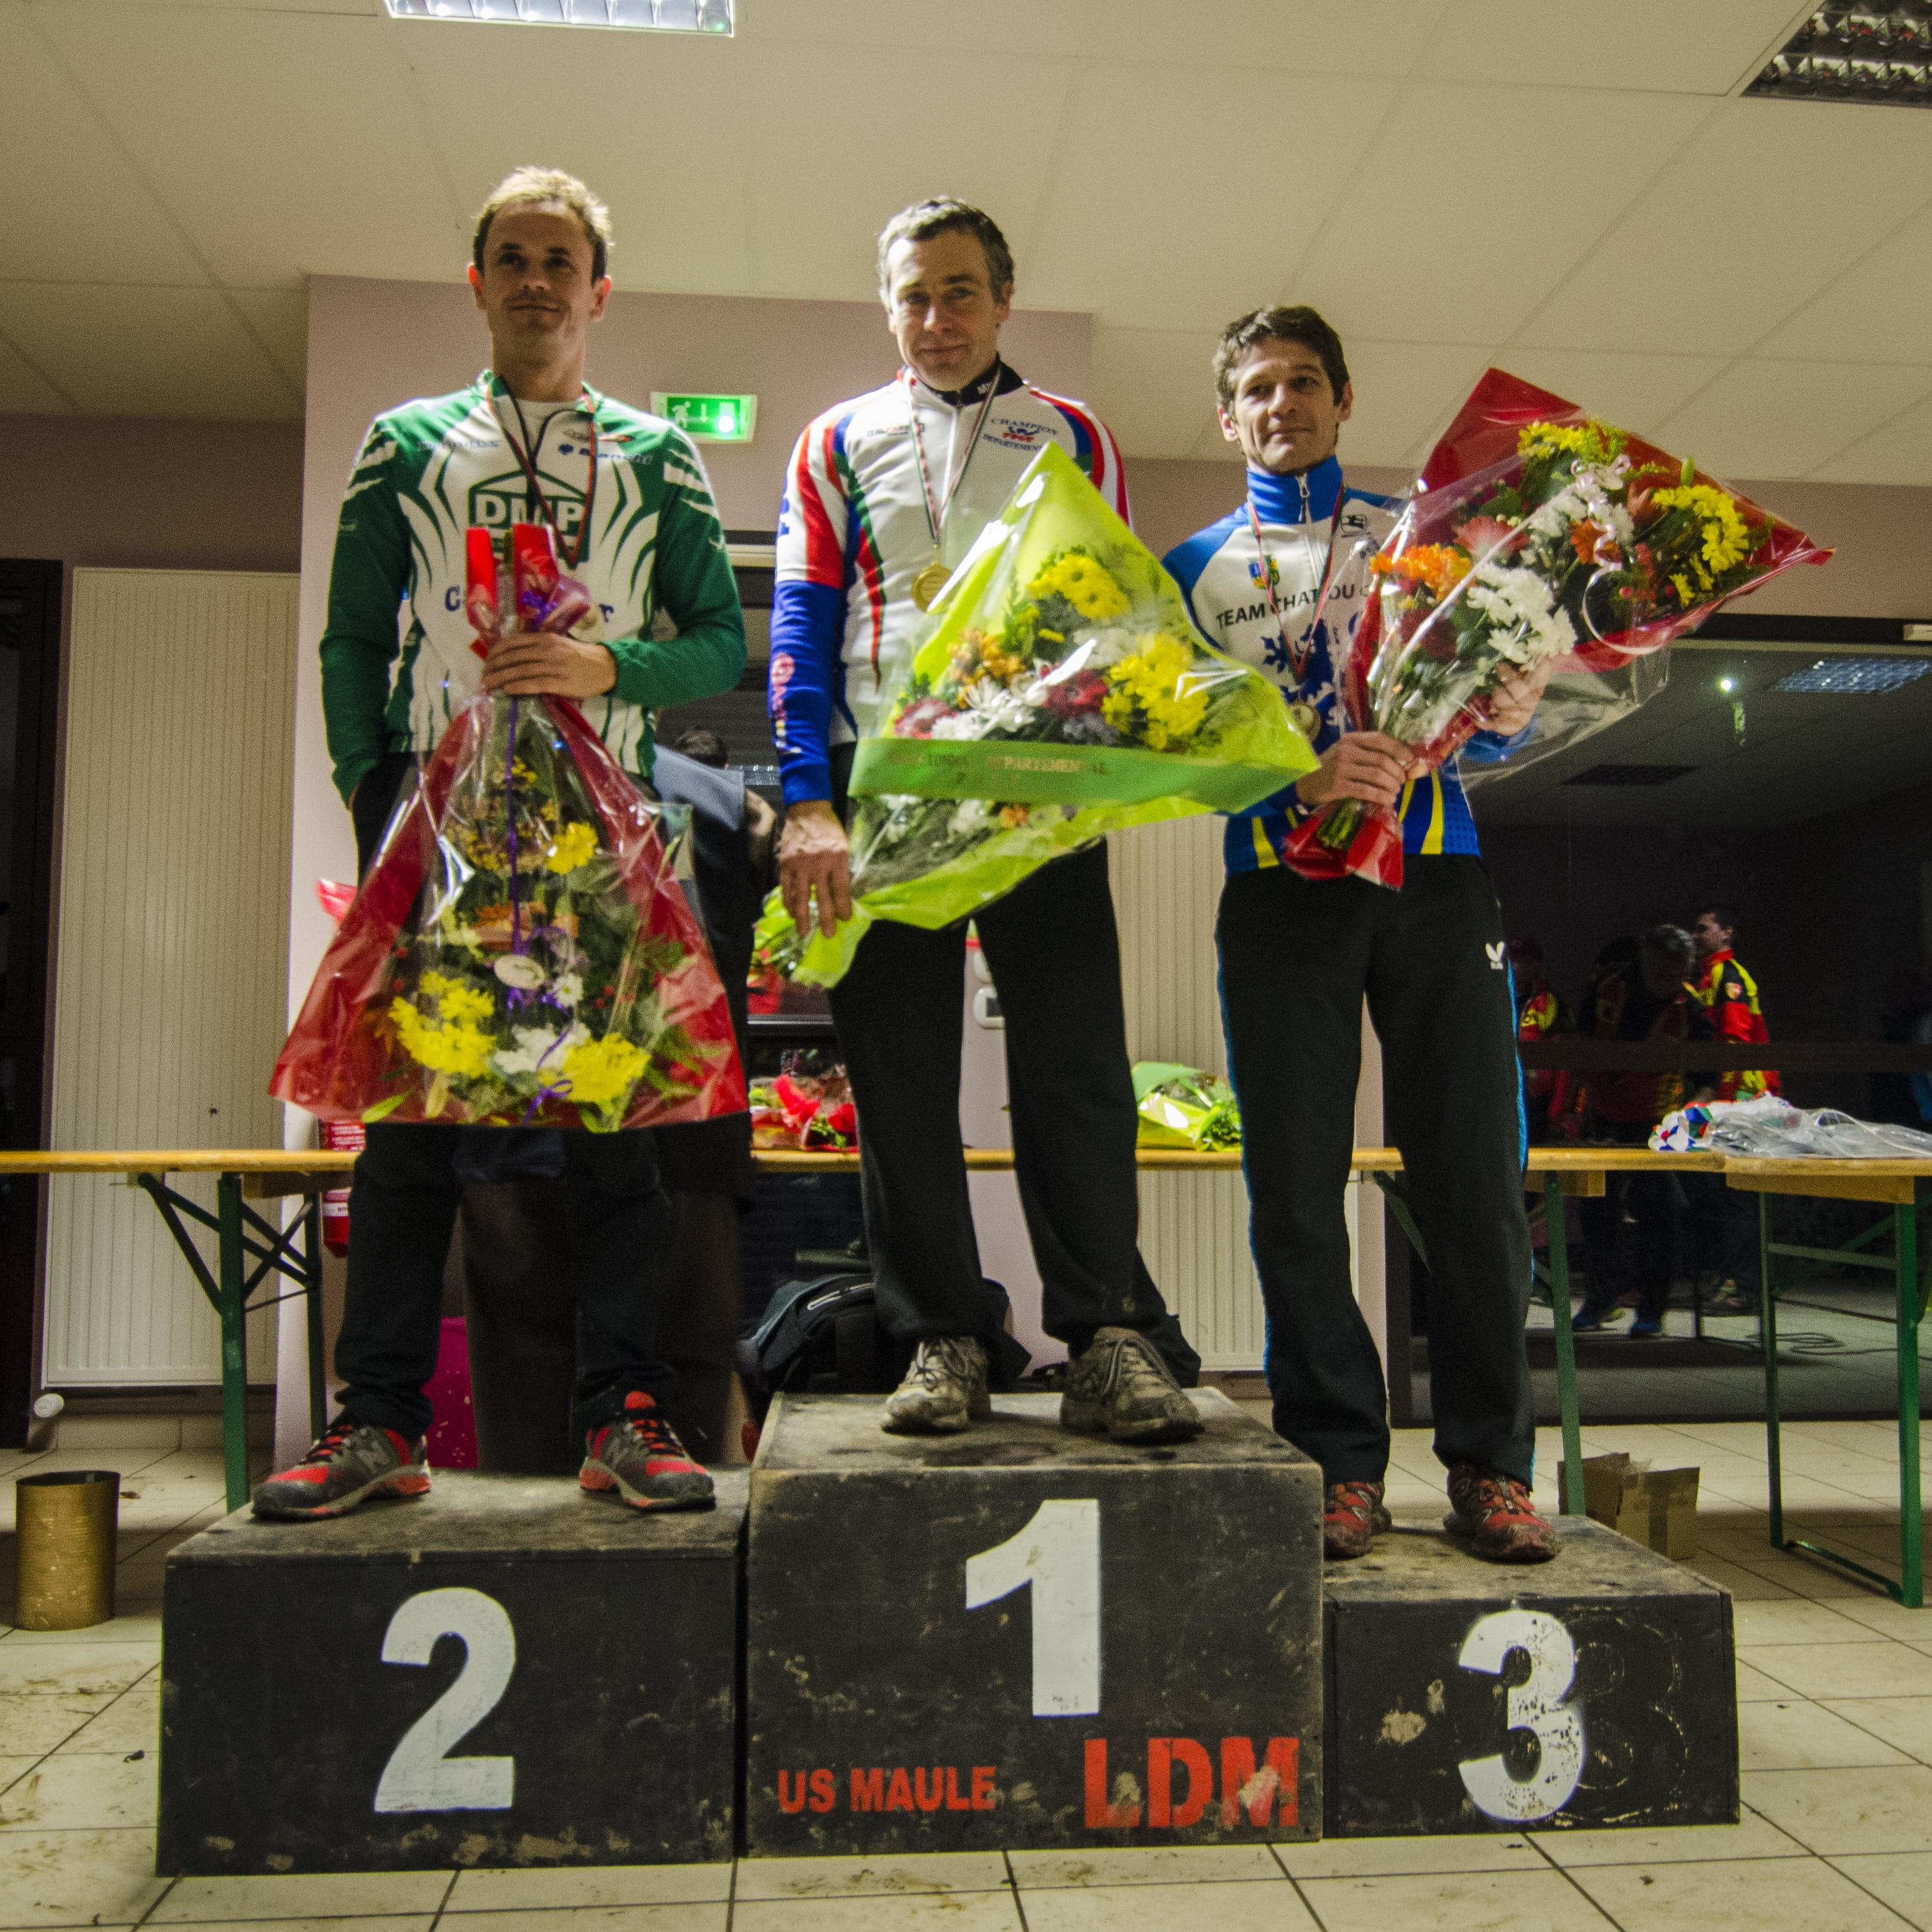 CX - Septeuil 2017 - Podium